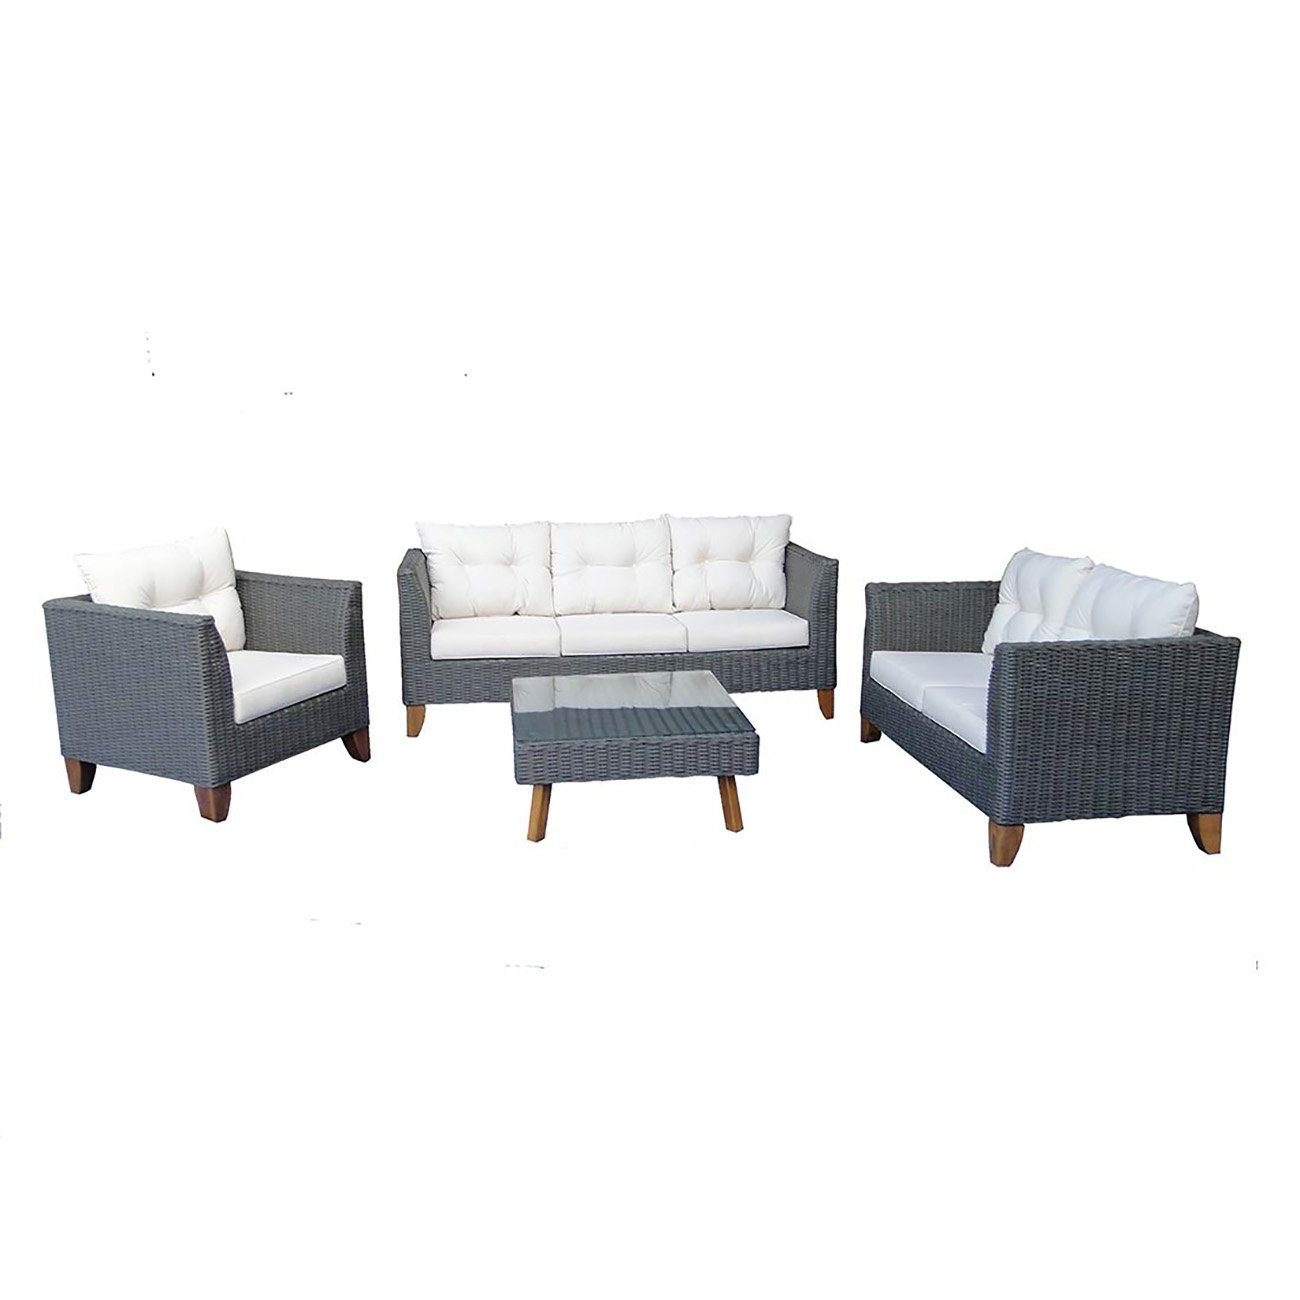 gartenm bel lounge set outliv kreta gartenlounge 4 tlg polyrattan akazie loungem bel outdoor. Black Bedroom Furniture Sets. Home Design Ideas